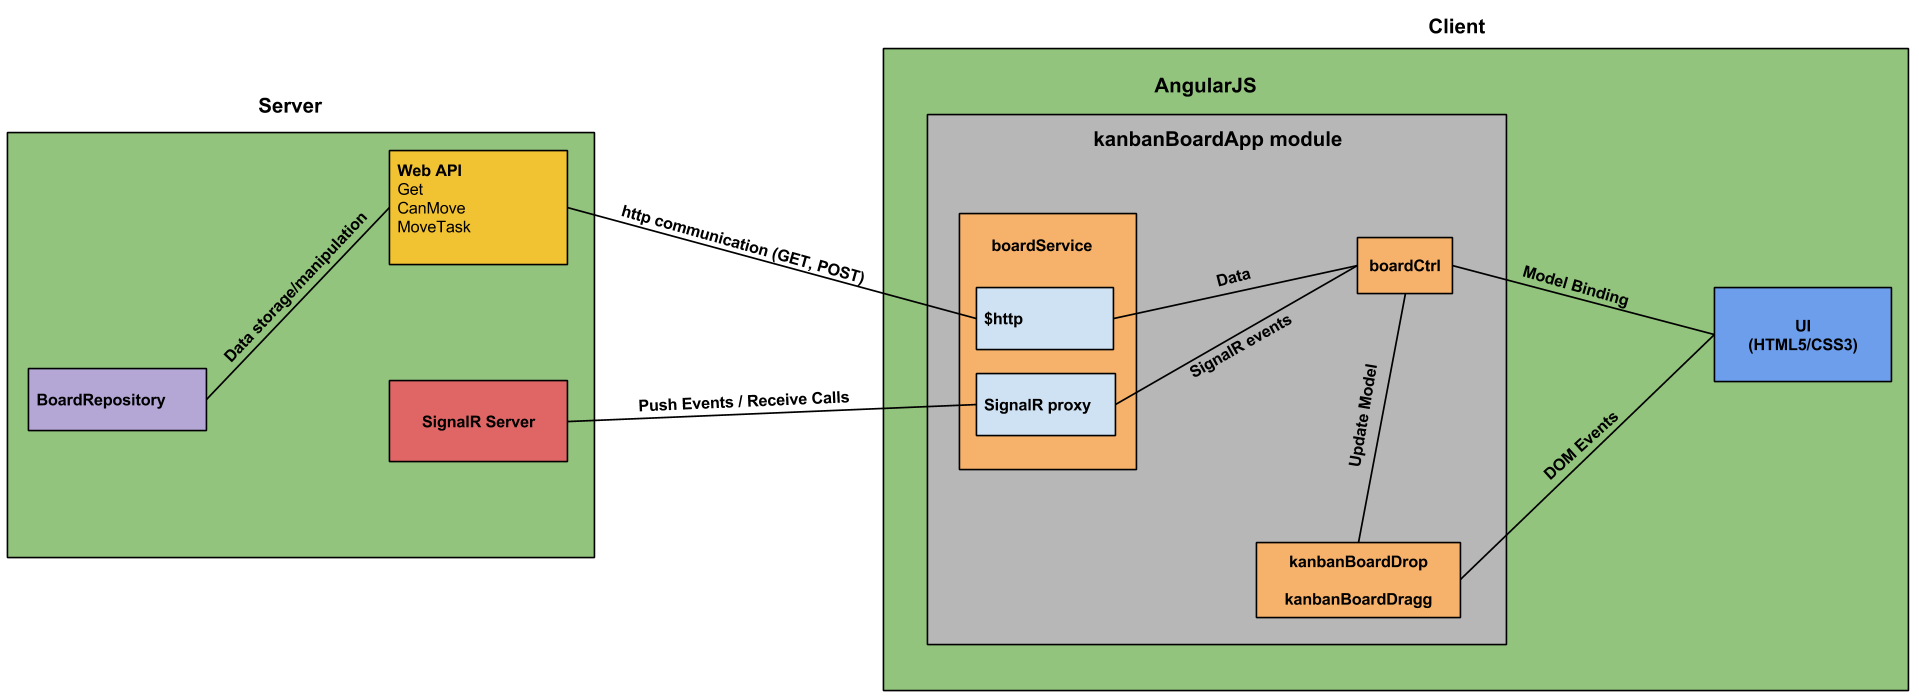 Building a kanban board application using angularjs for Angularjs 2 architecture